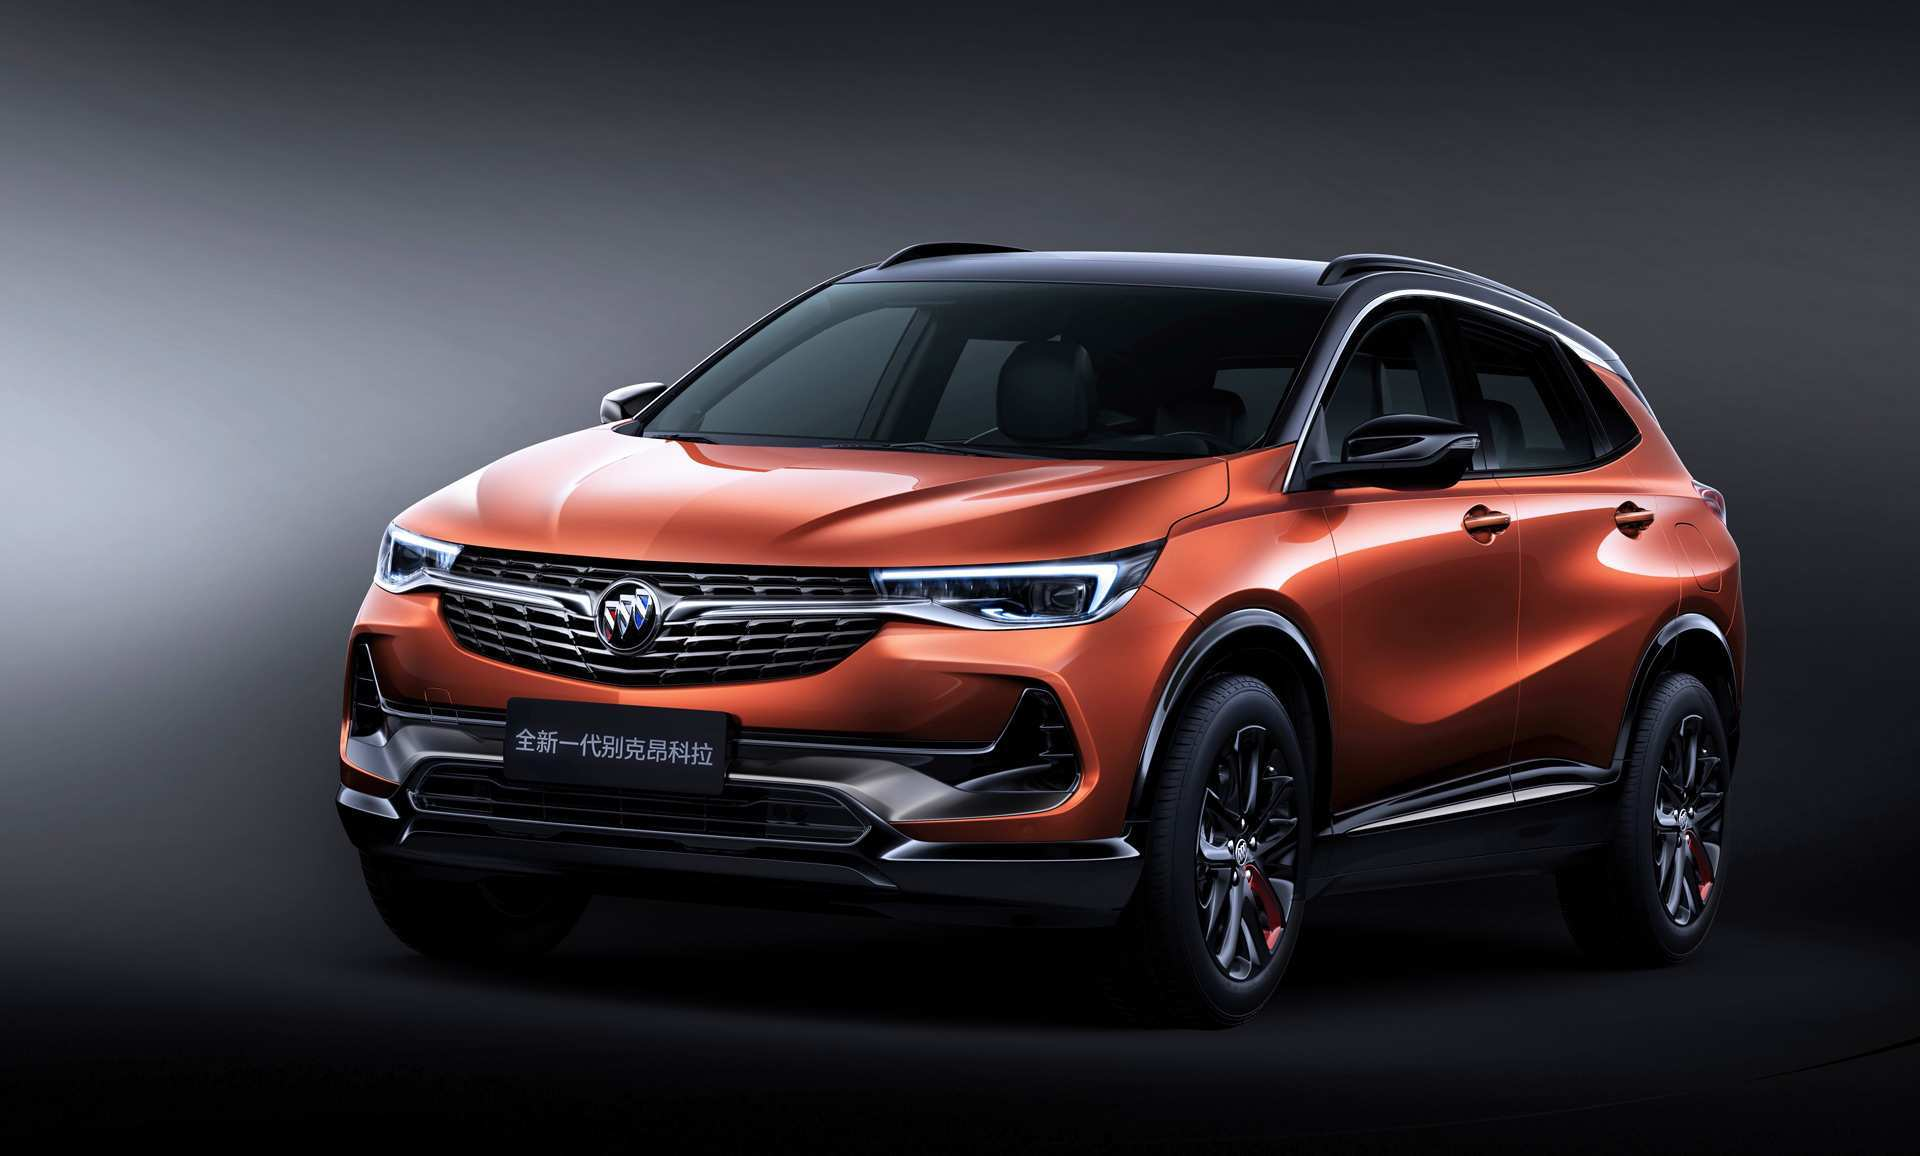 80 The Best 2020 Buick Suv Picture